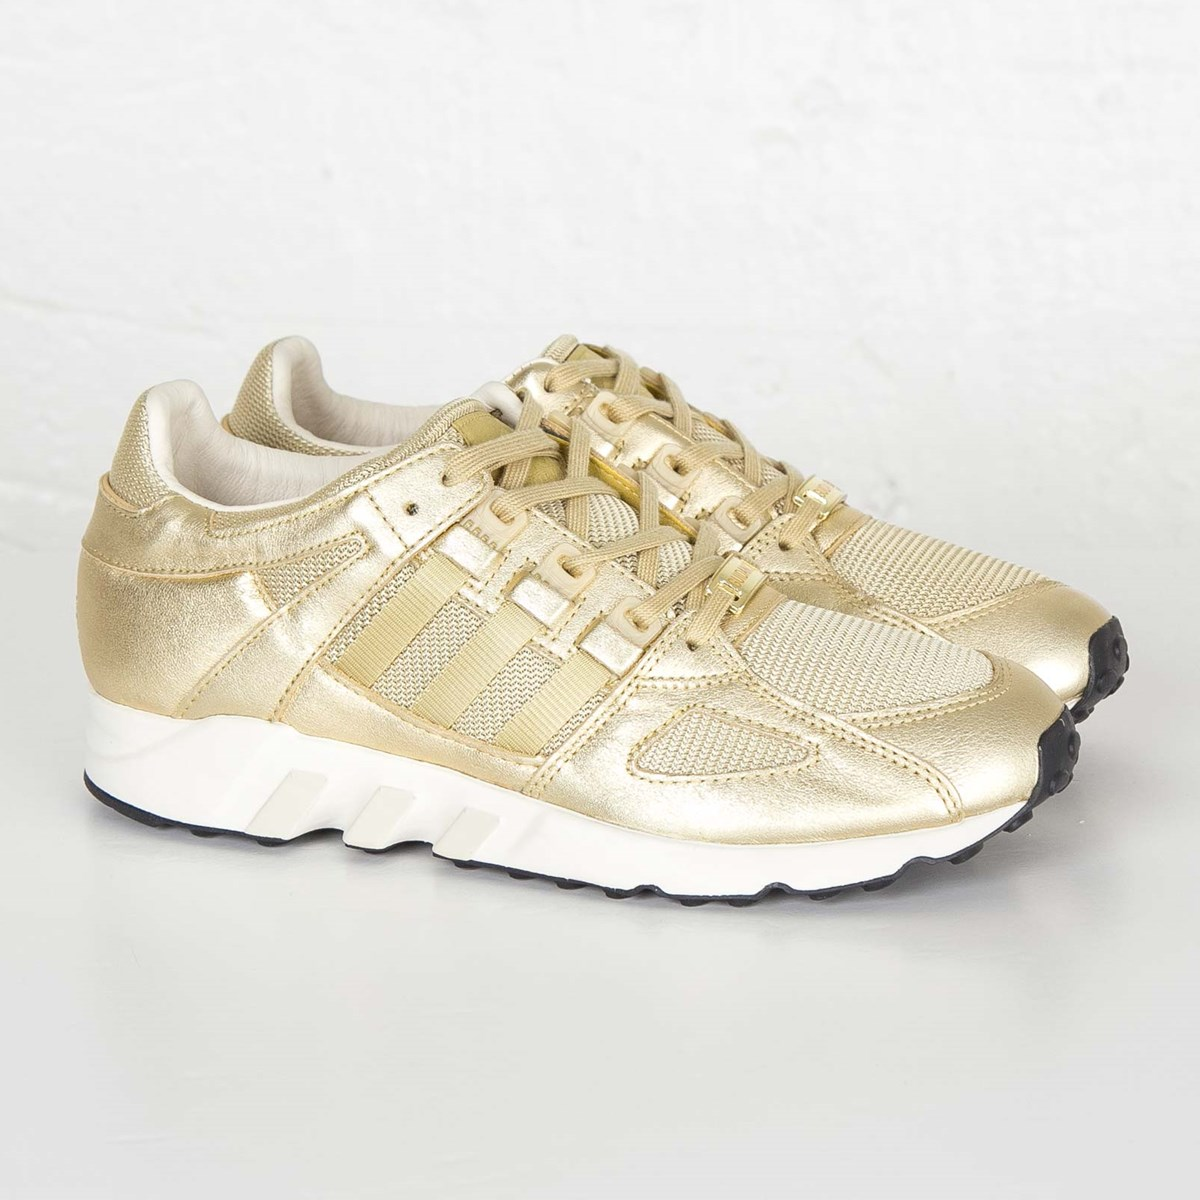 online store 236cc 16657 adidas Equipment Running Guidance - Ba8587 - Sneakersnstuff  sneakers   streetwear online since 1999